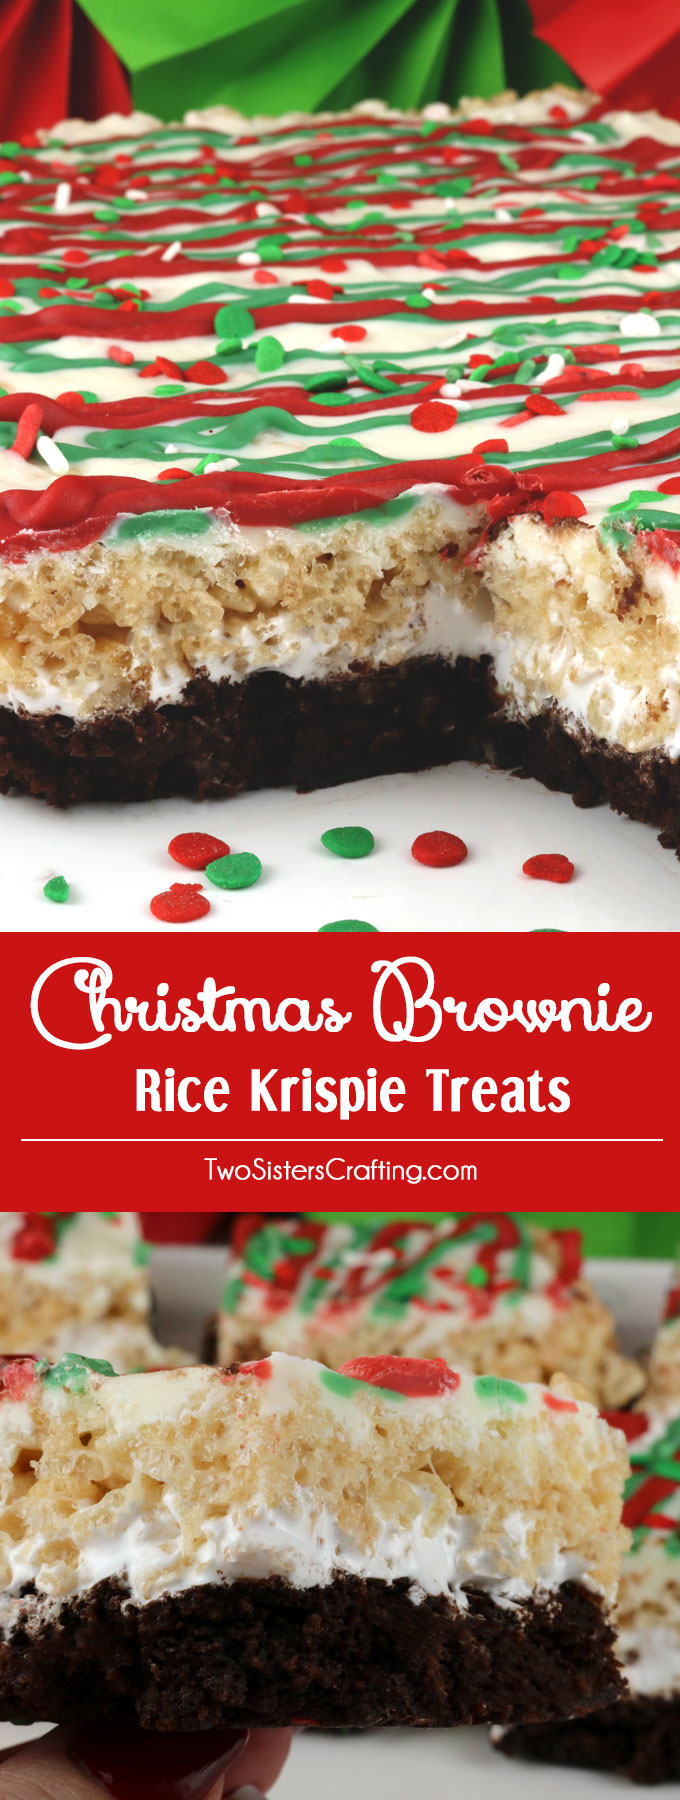 Christmas Brownie Rice Krispie Treats - your family will love these festive Holiday themed layered dessert bars featuring Brownies and Rice Krispie Treats. These colorful and festive Christmas Treats will be a fun addition to your Christmas baking list. These pretty and yummy Rice Krispie Treats are perfect for a Holiday Party or a family get-together. Pin this great Christmas dessert for later and follow us for more fun Christmas Food Ideas. #ChristmasDesserts #ChristmasTreats #ChristmasCookies #ChristmasFood #Brownies #RiceKrispieTreats